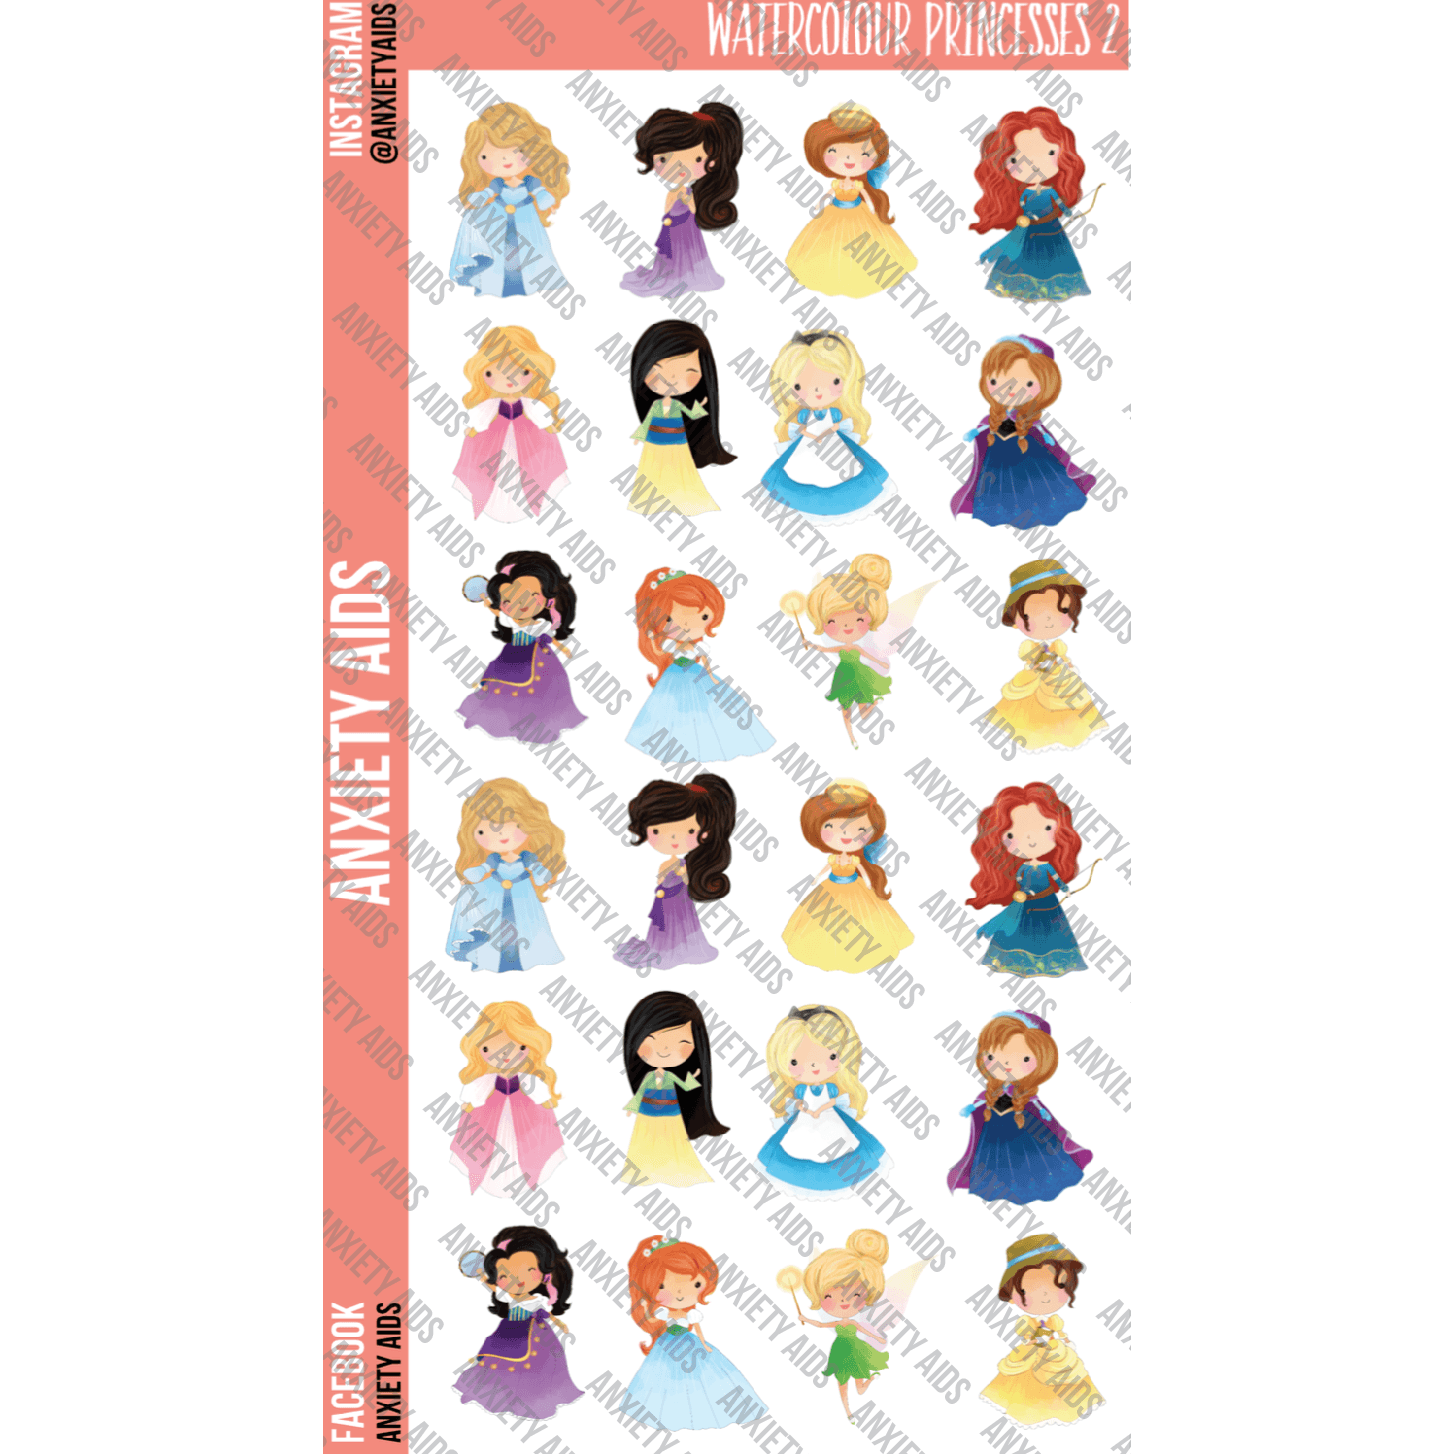 Watercolor Princesses 2 Stickers